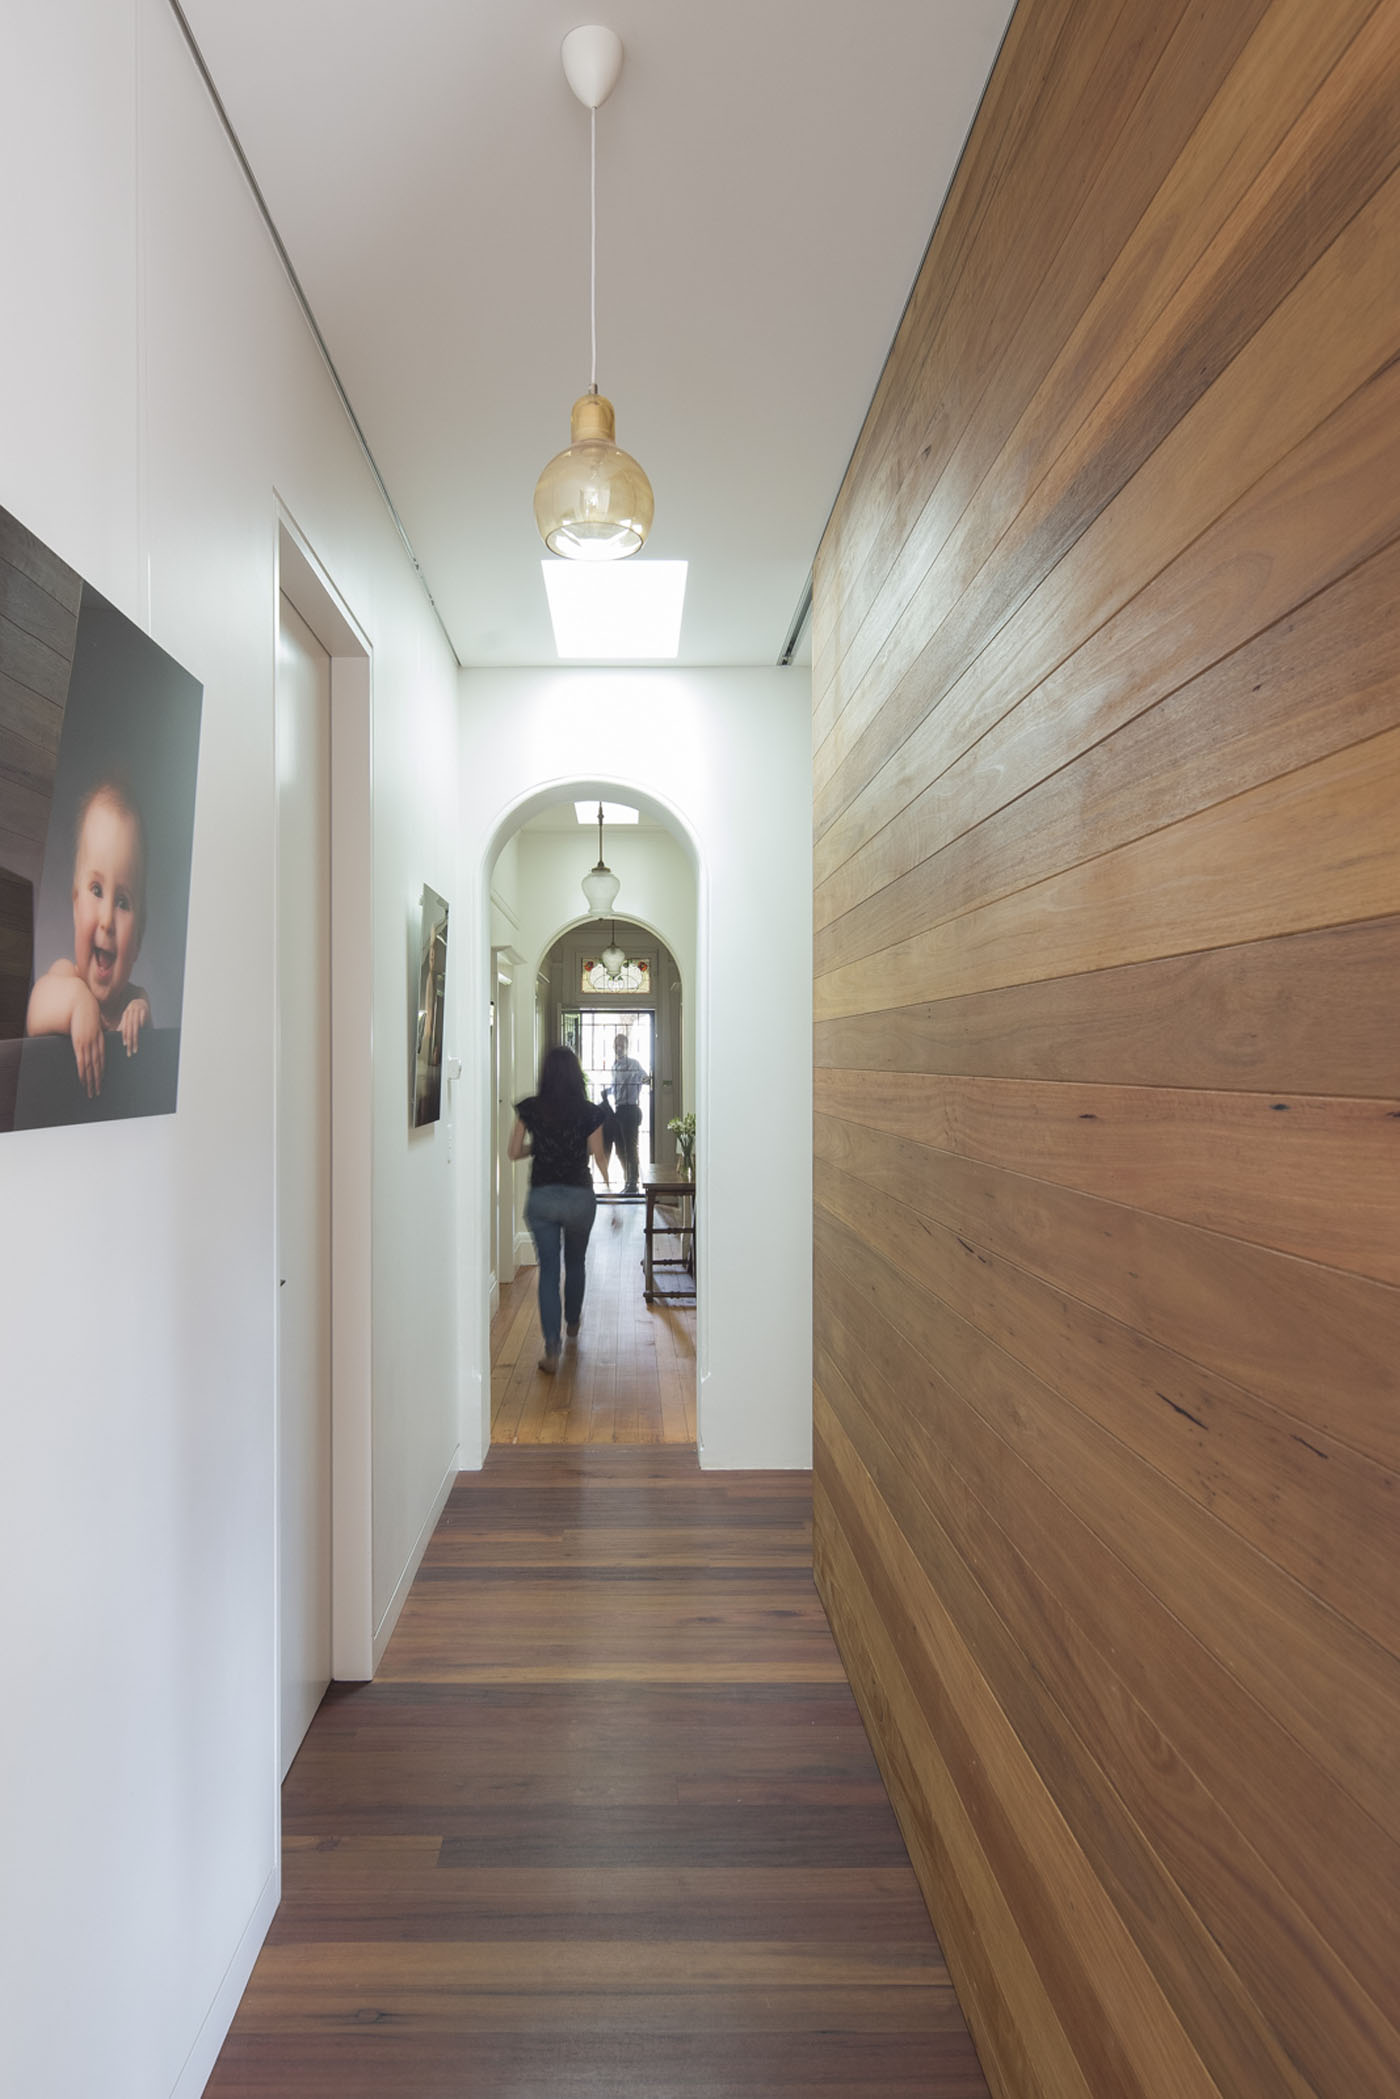 Denney House by Sam Crawford Architects, ironbark recycled hardwood floor and panelling in contrast with white painted walls